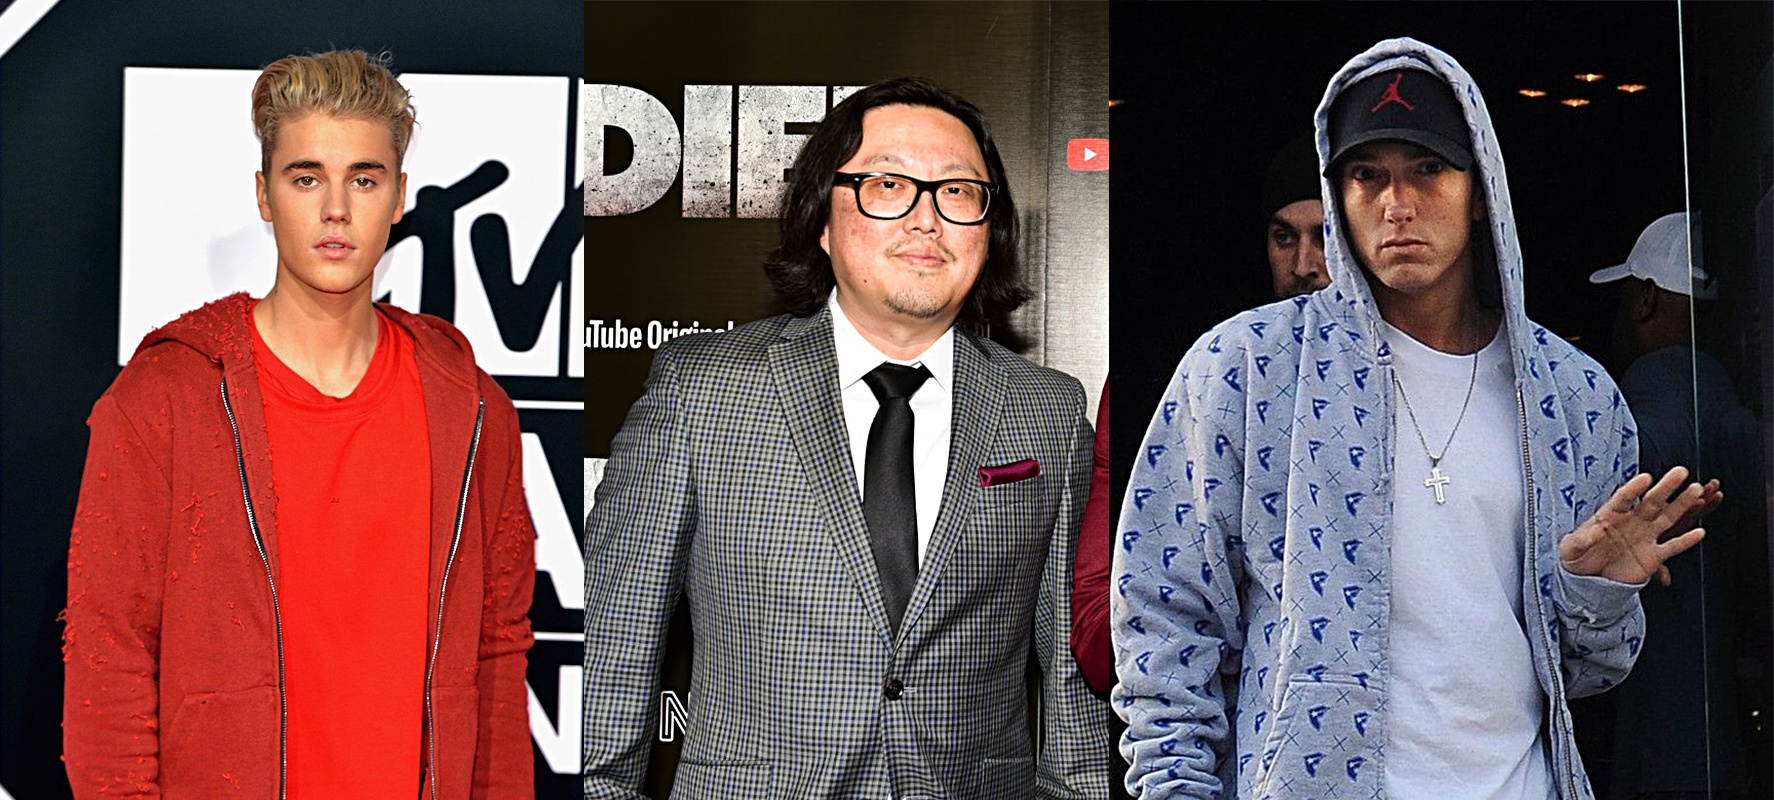 Joseph Kahn wants Eminem to diss Justin Bieber for